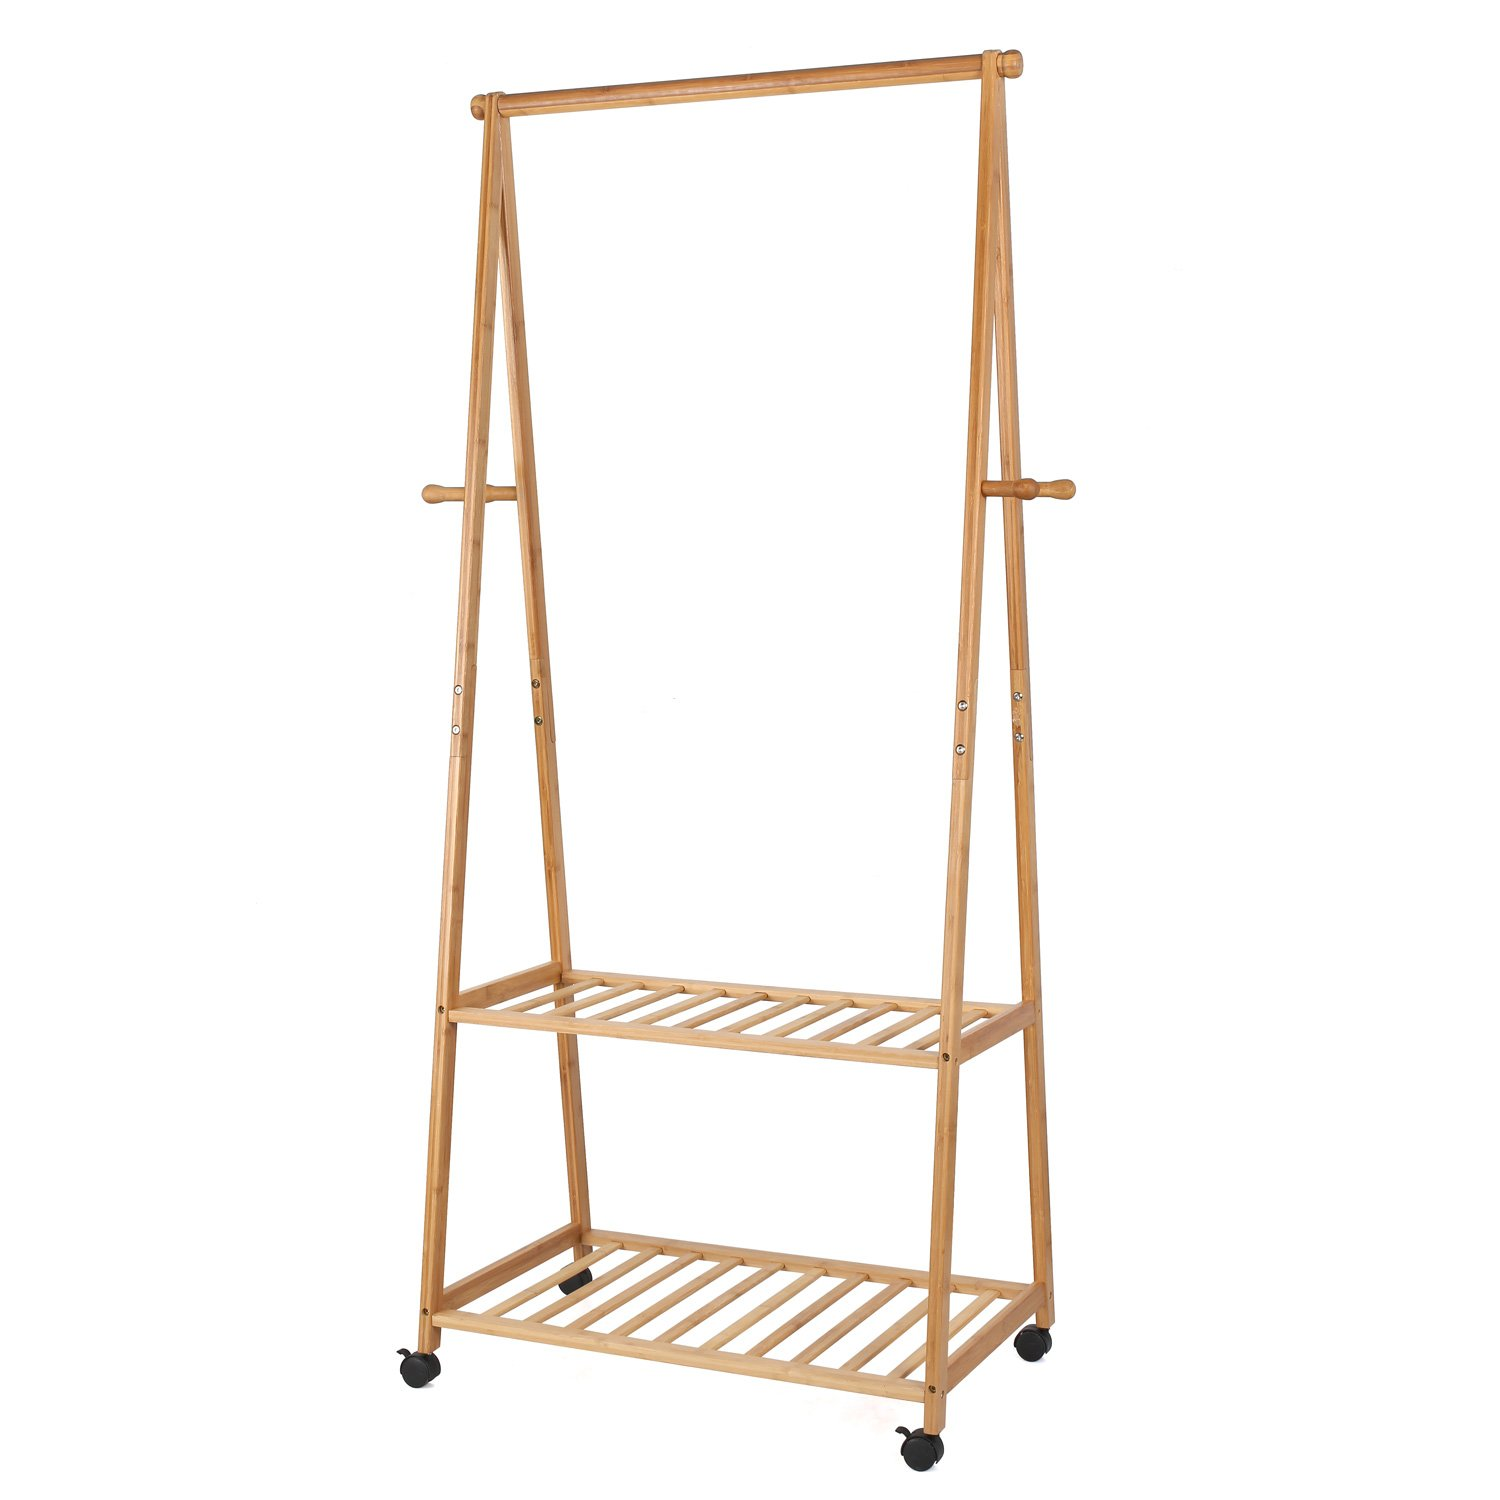 Homfa Bamboo Clothes Rack on Wheels Rolling Garment Rack with 2-Tier Storage Shelves and 4 Coat Hooks for Shoes, Clothing by Homfa